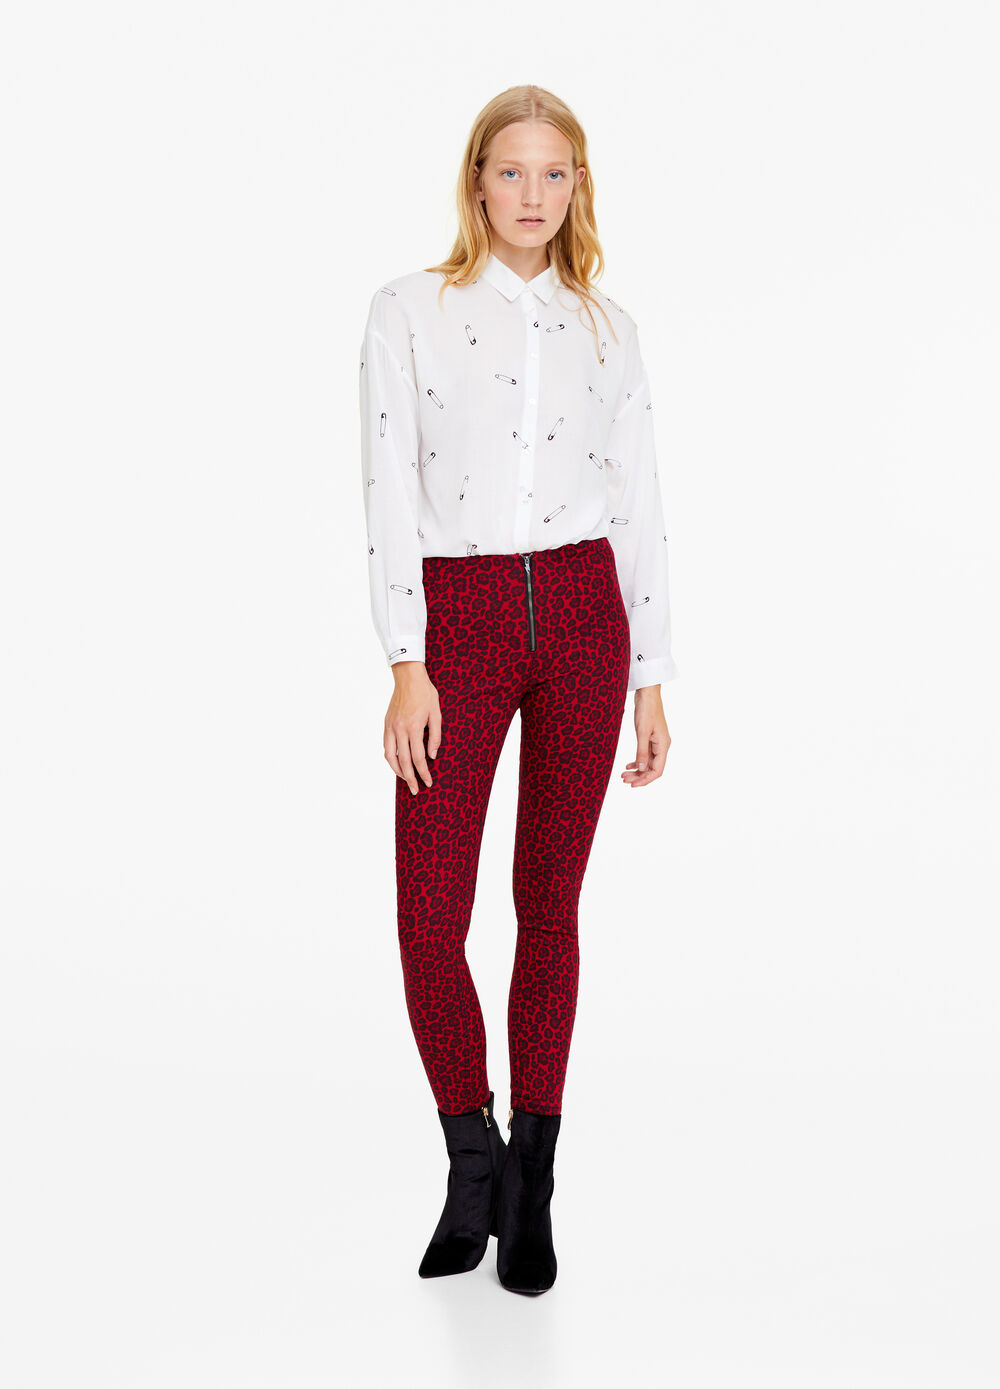 Cotton blend patterned trousers